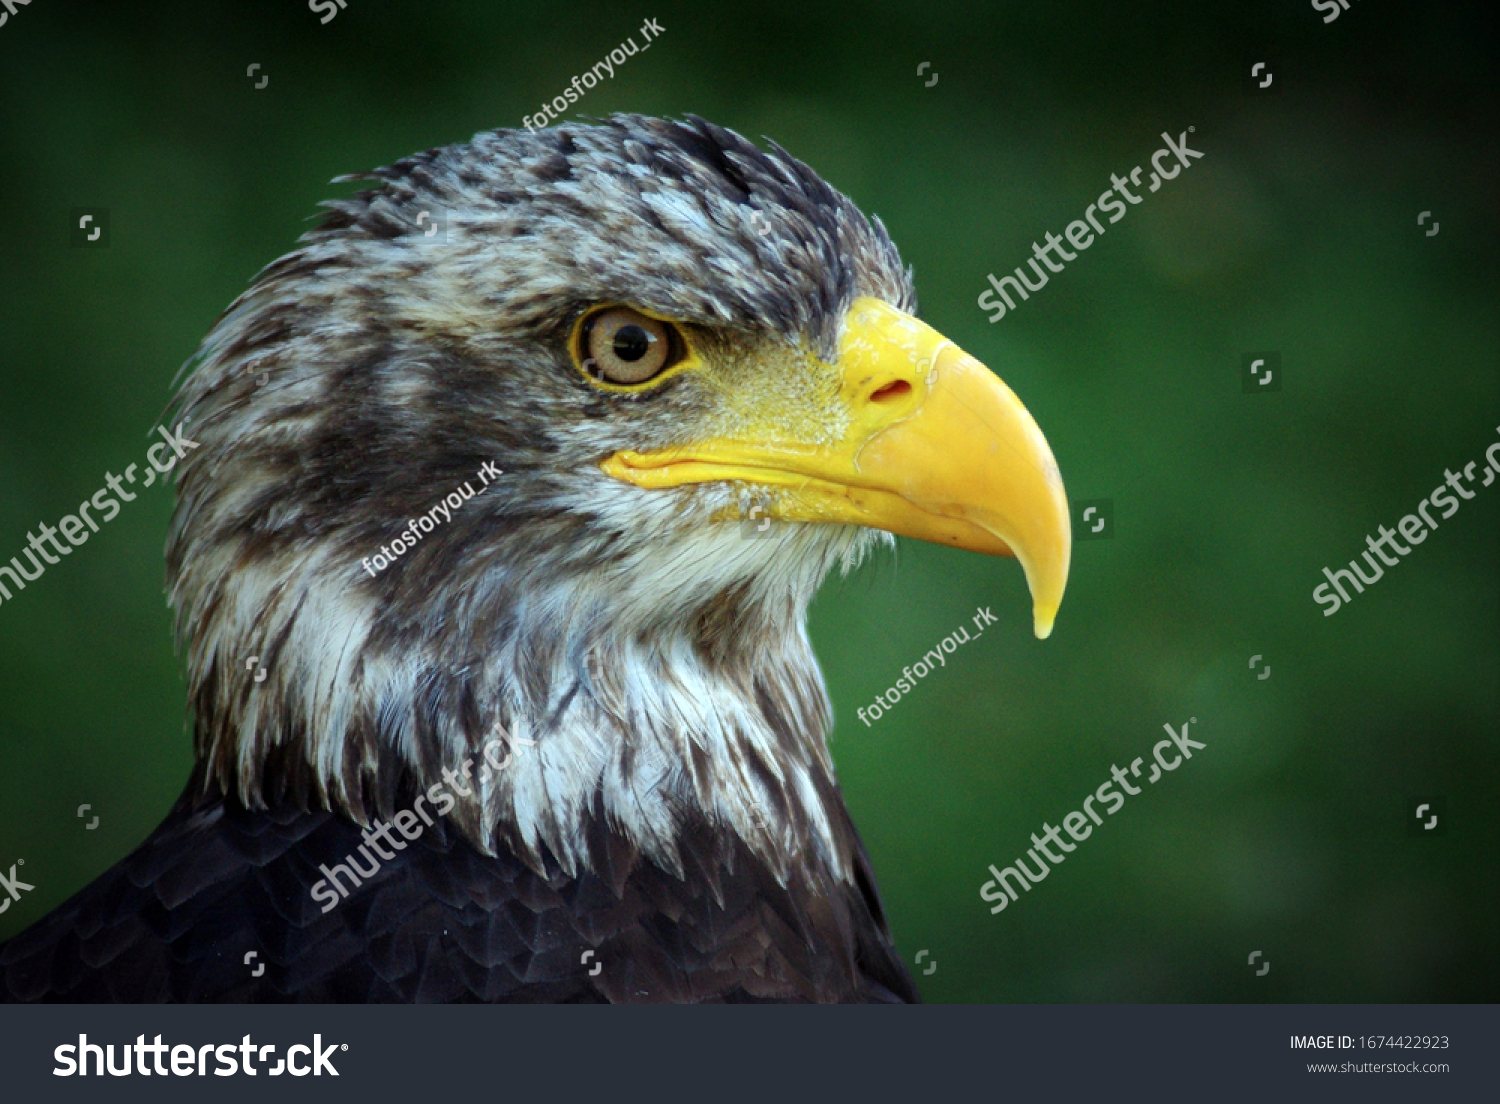 stock-photo-bald-eagle-with-green-background-1674422923.jpg